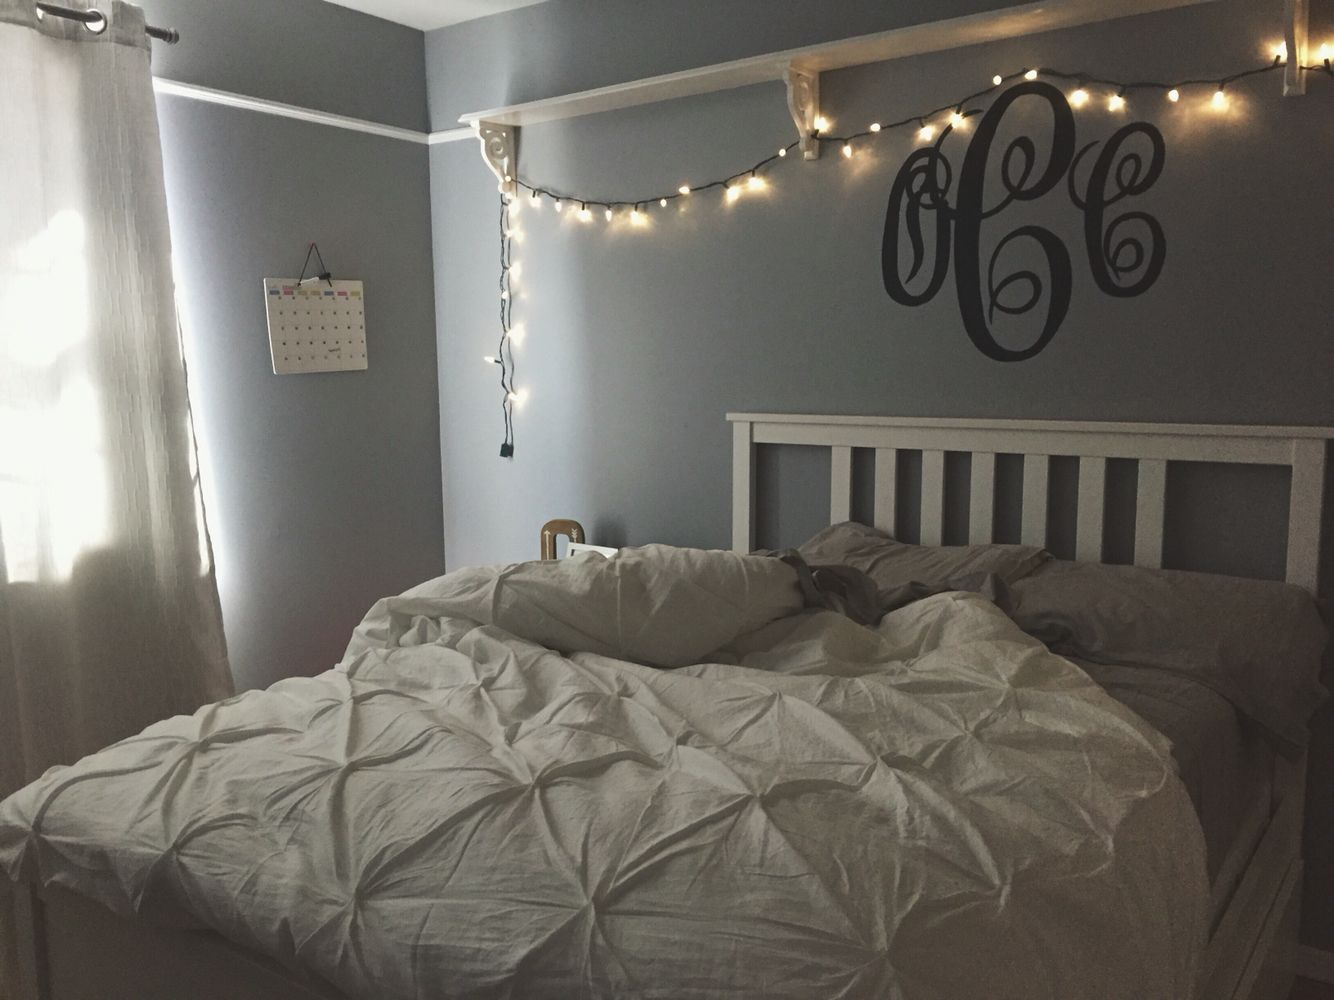 My room teenage bedroom fairy lights grey white bedroom for Teen decor for bedroom